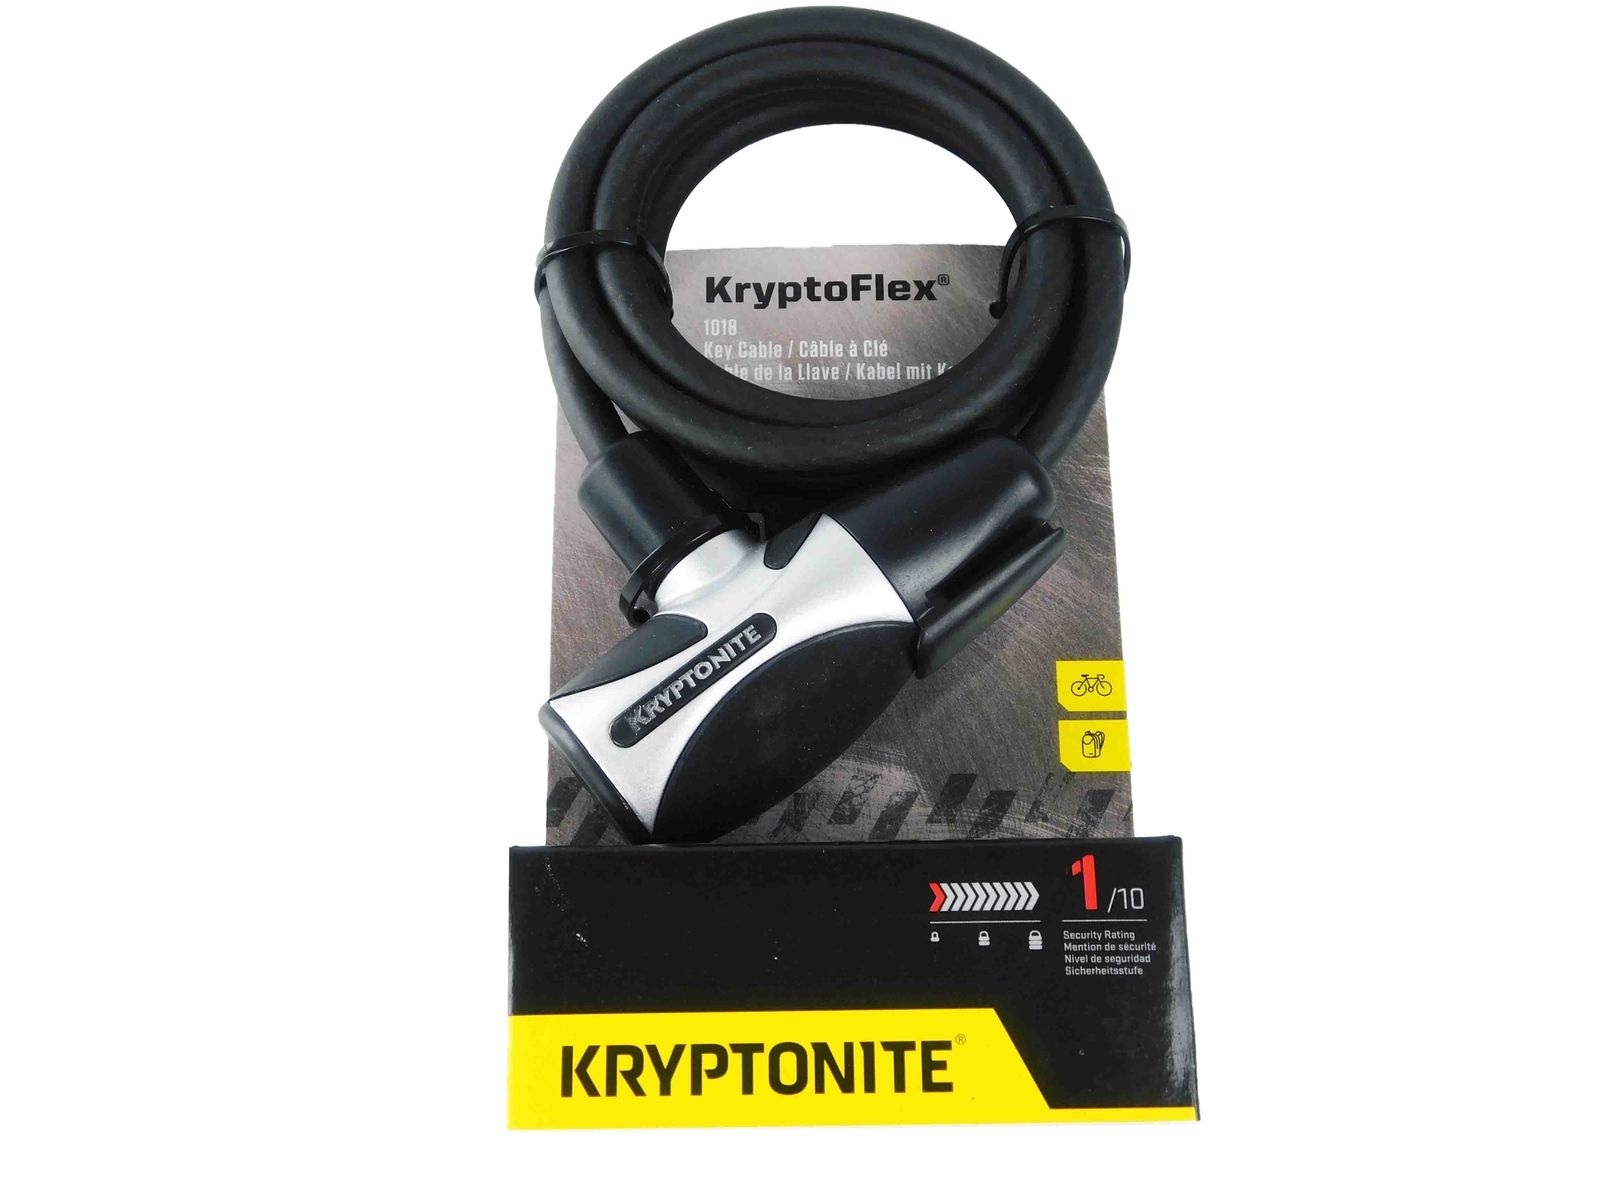 Kryptonite-999805-Kryptoflex-1018-Key-Cable-Bicycle-Lock-10mm-x-6-Foot-image-2